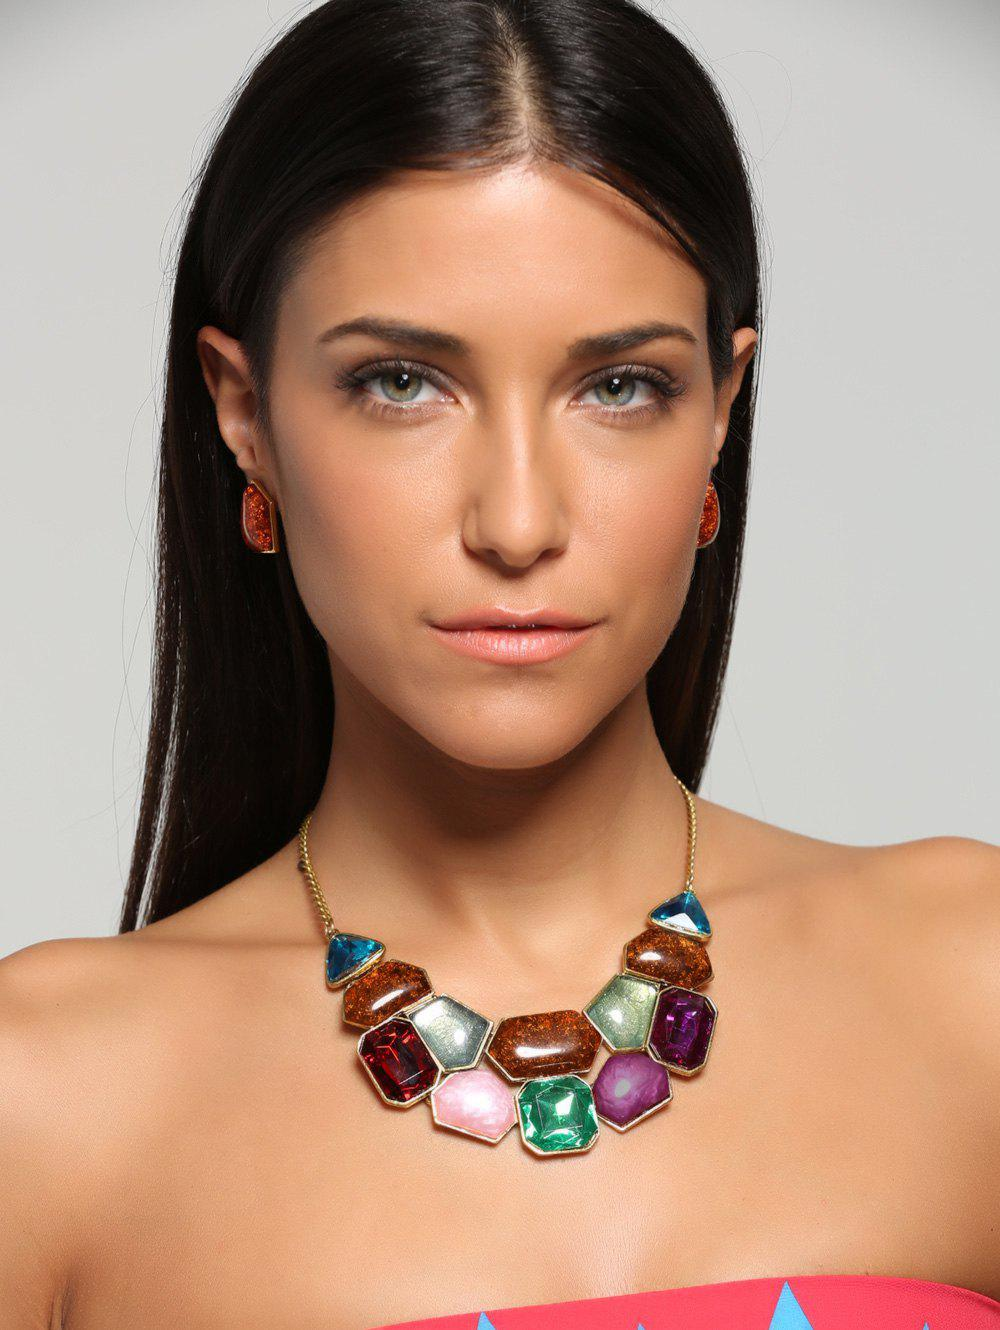 Faux Gemstone Statement Boho Necklace and Earrings statement alloy crochet earrings and necklace